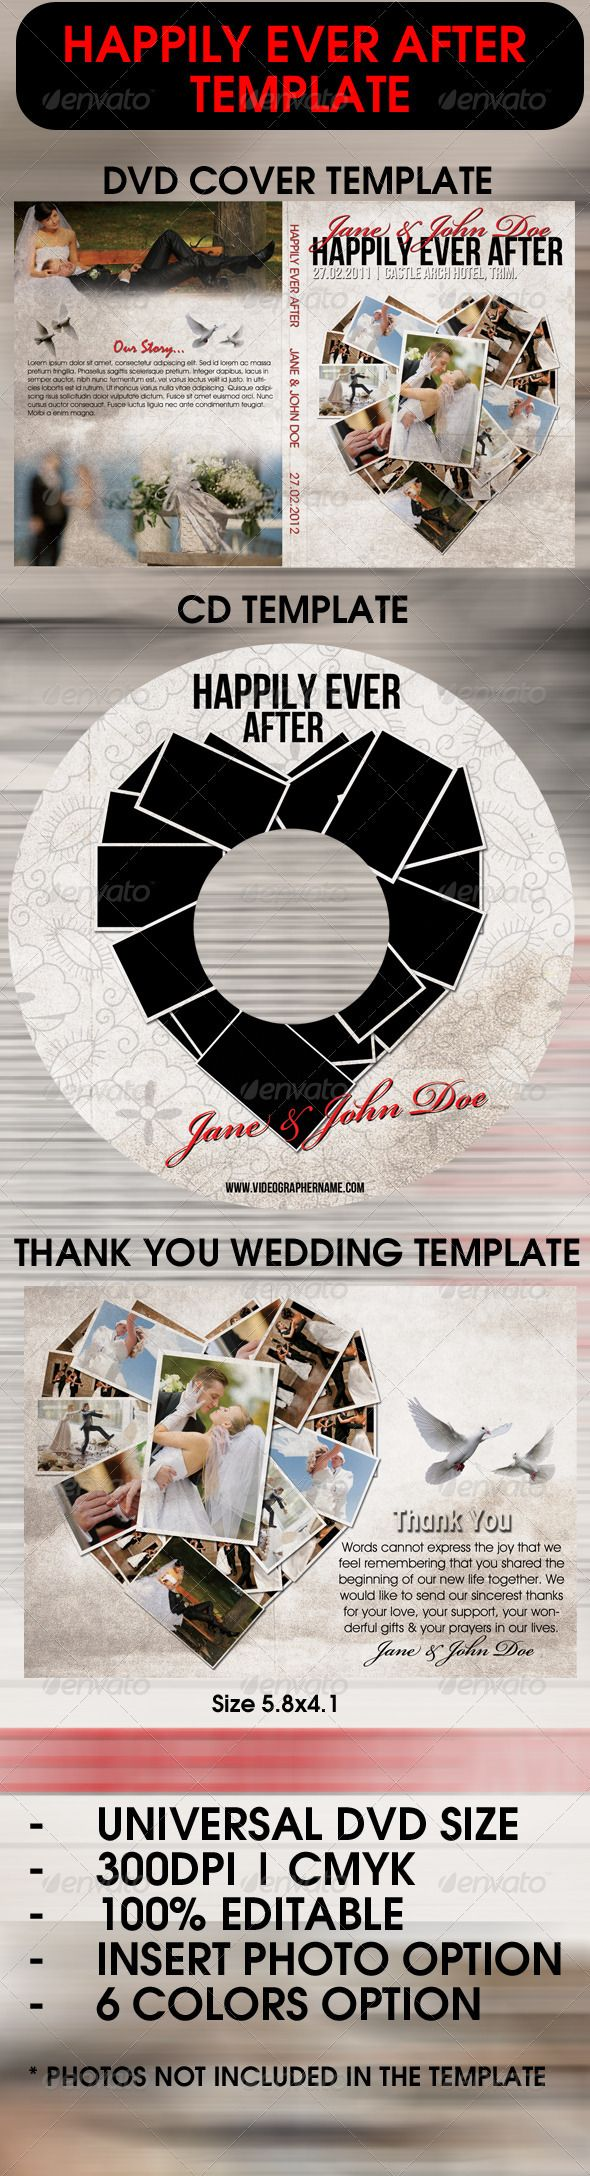 Happily Ever After Wedding Template